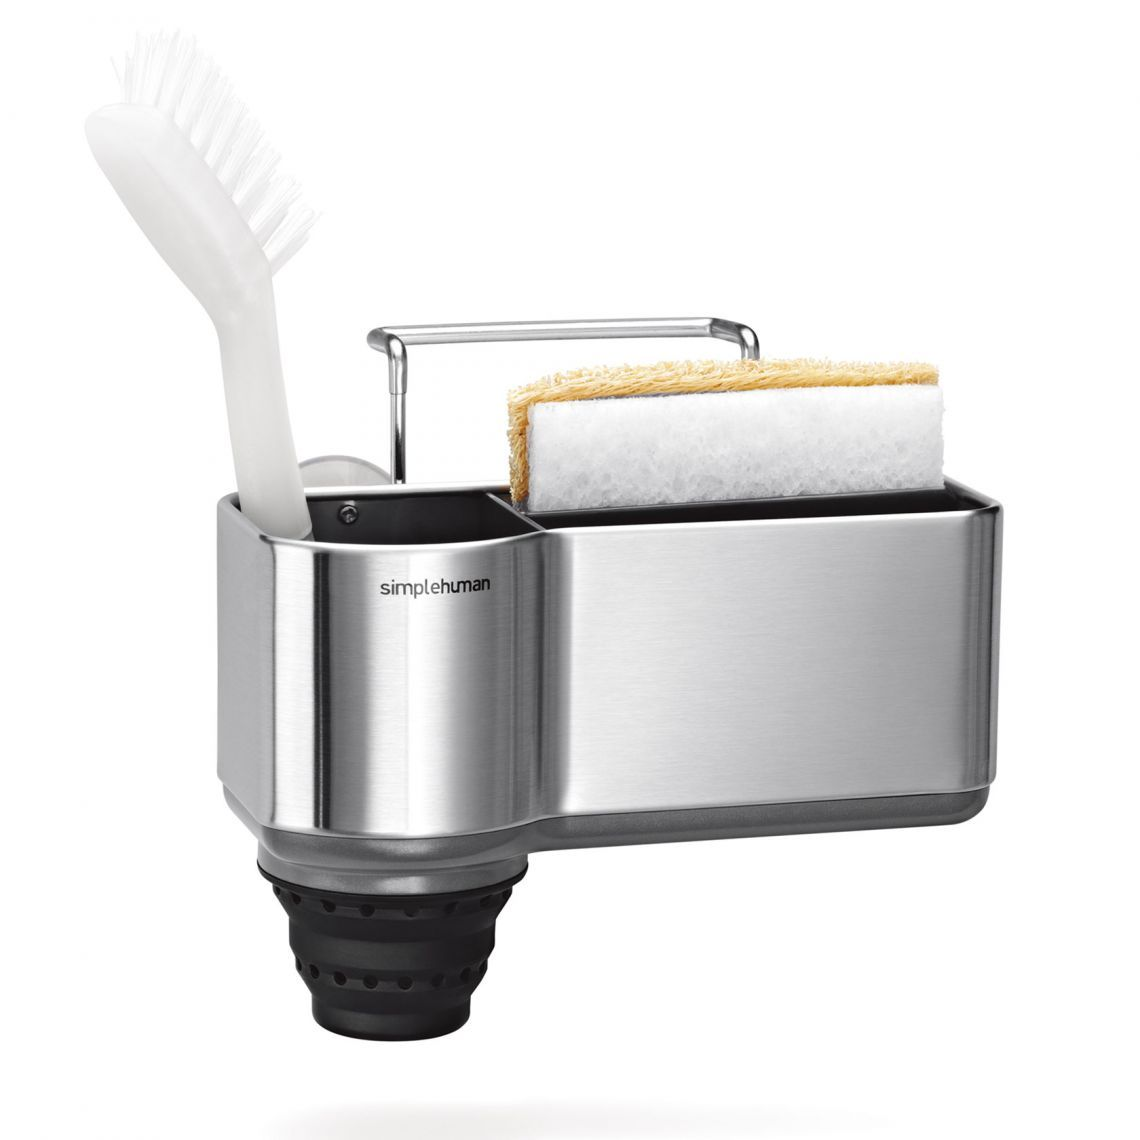 Sink Caddy Brushed Stainless Steel Kitchen Sink Caddy